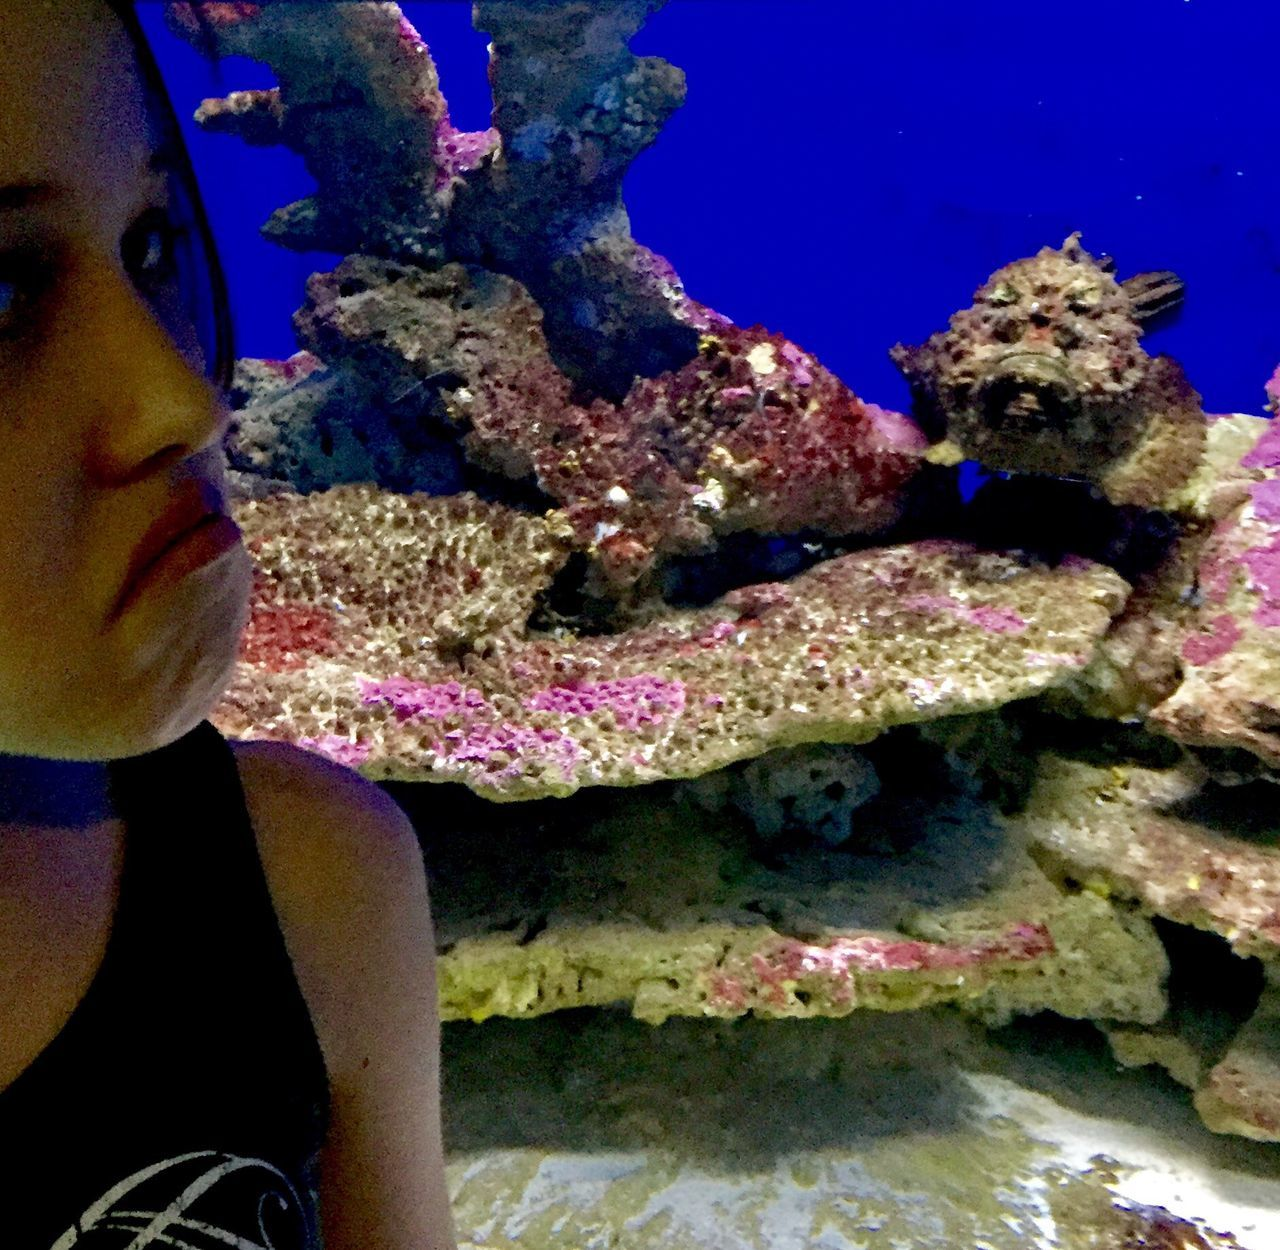 EyeEmNewHere Underwater UnderSea Coral Real People Sea Life Fish Sea Animal Themes Water Nature Animal Wildlife Animals In The Wild One Woman Only Scuba Diving One Young Woman Only Close-up Day People Adult One Person Grumpy Stone Fish Camouflage